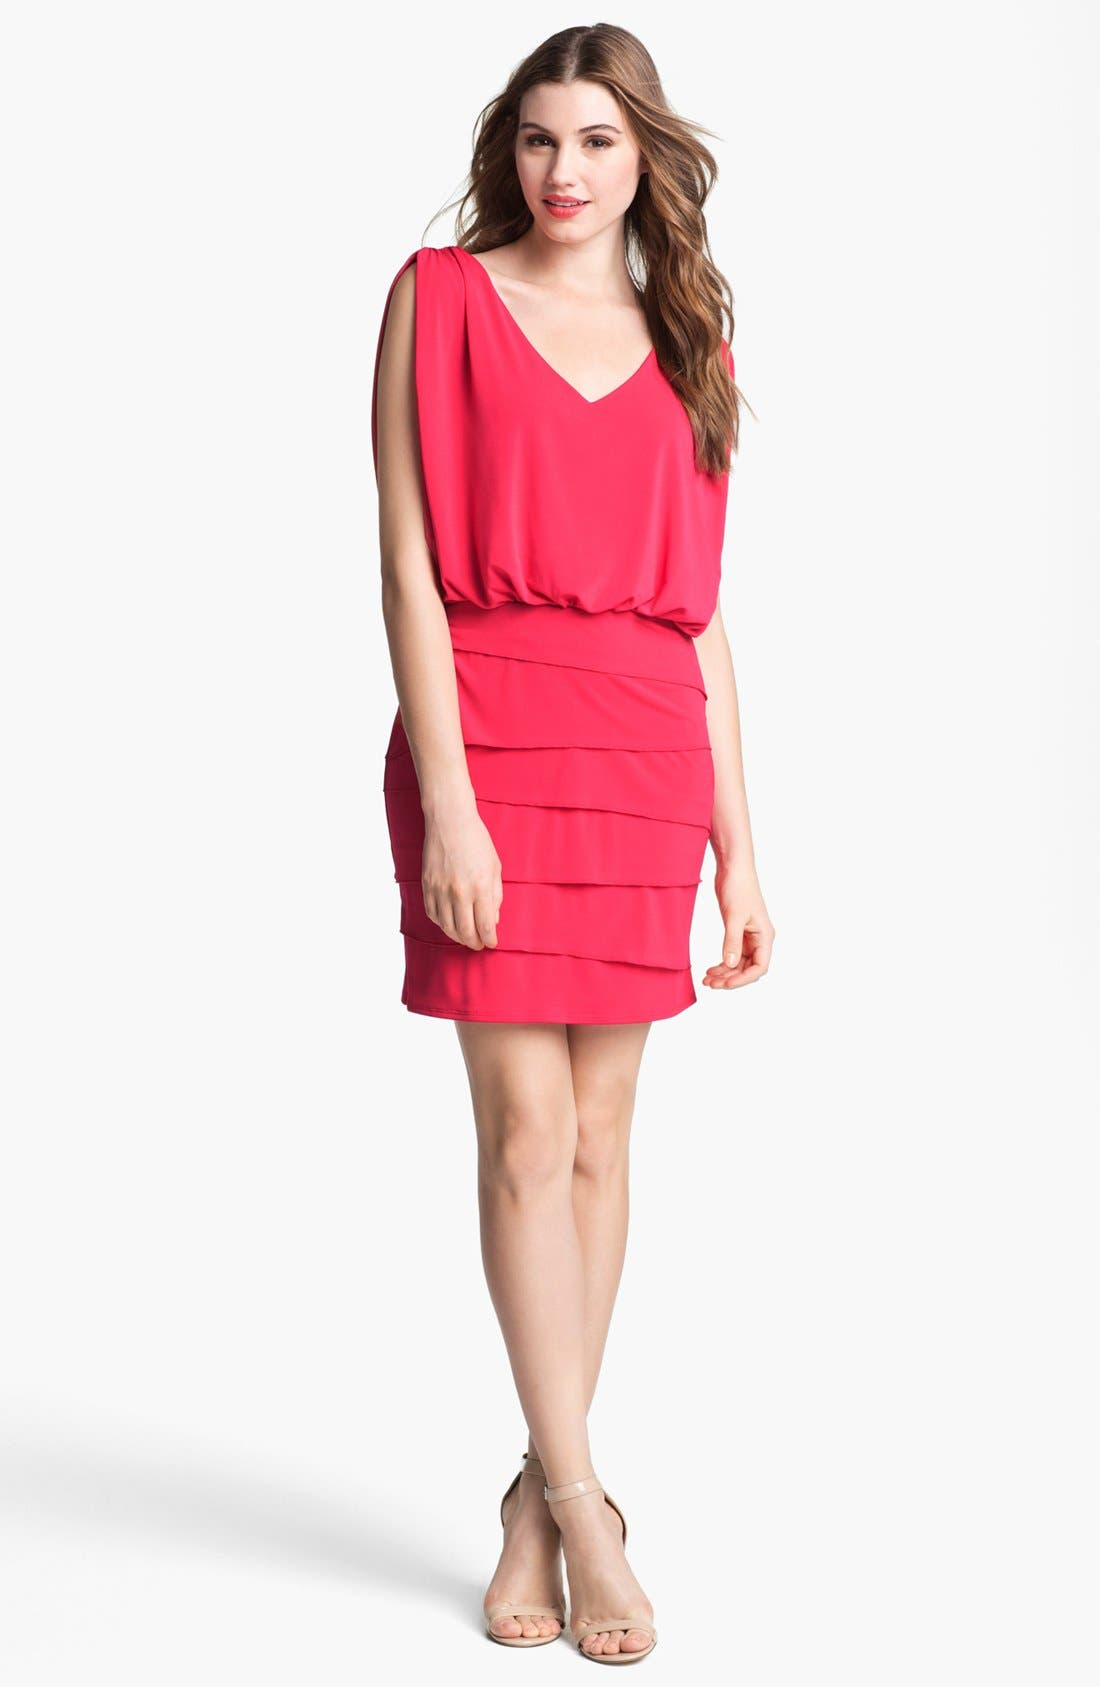 Main Image - Laundry by Shelli Segal Tiered Skirt Dress